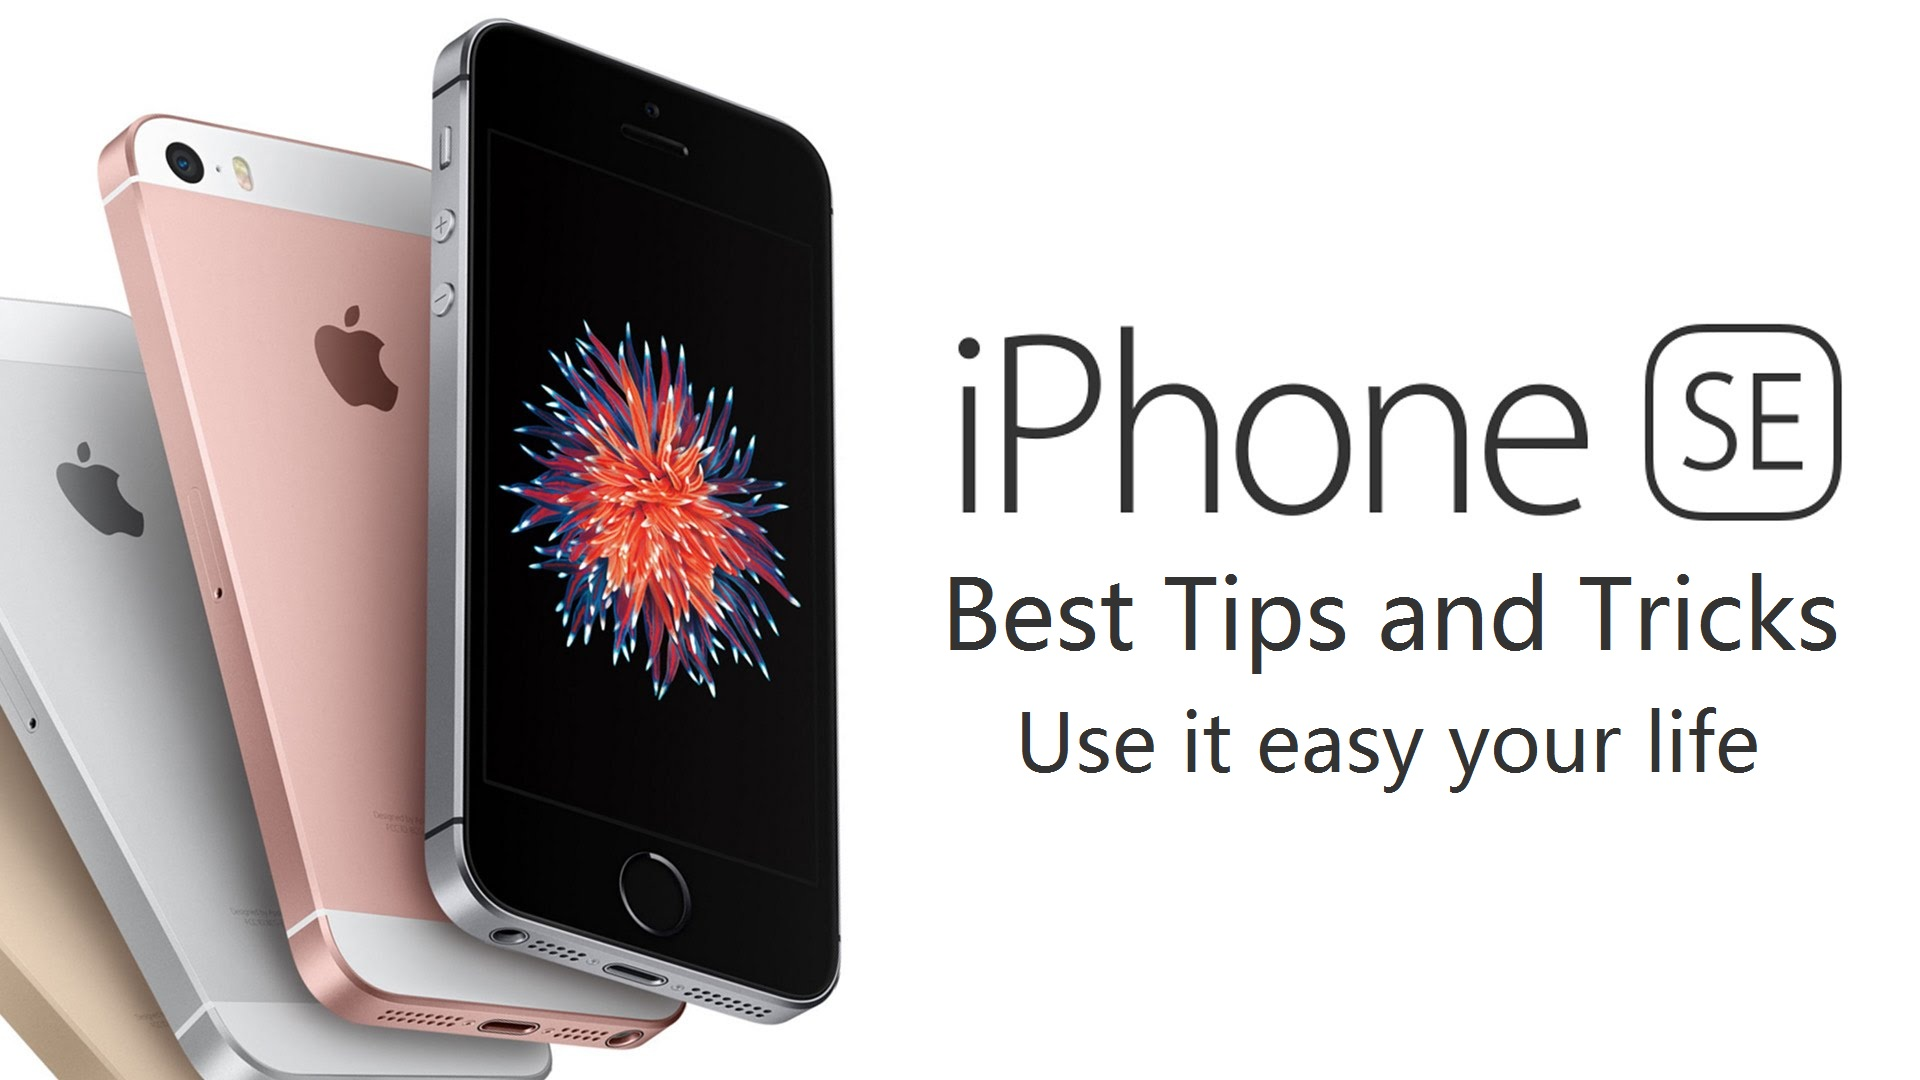 iphone SE best trick:Use it easy your life.